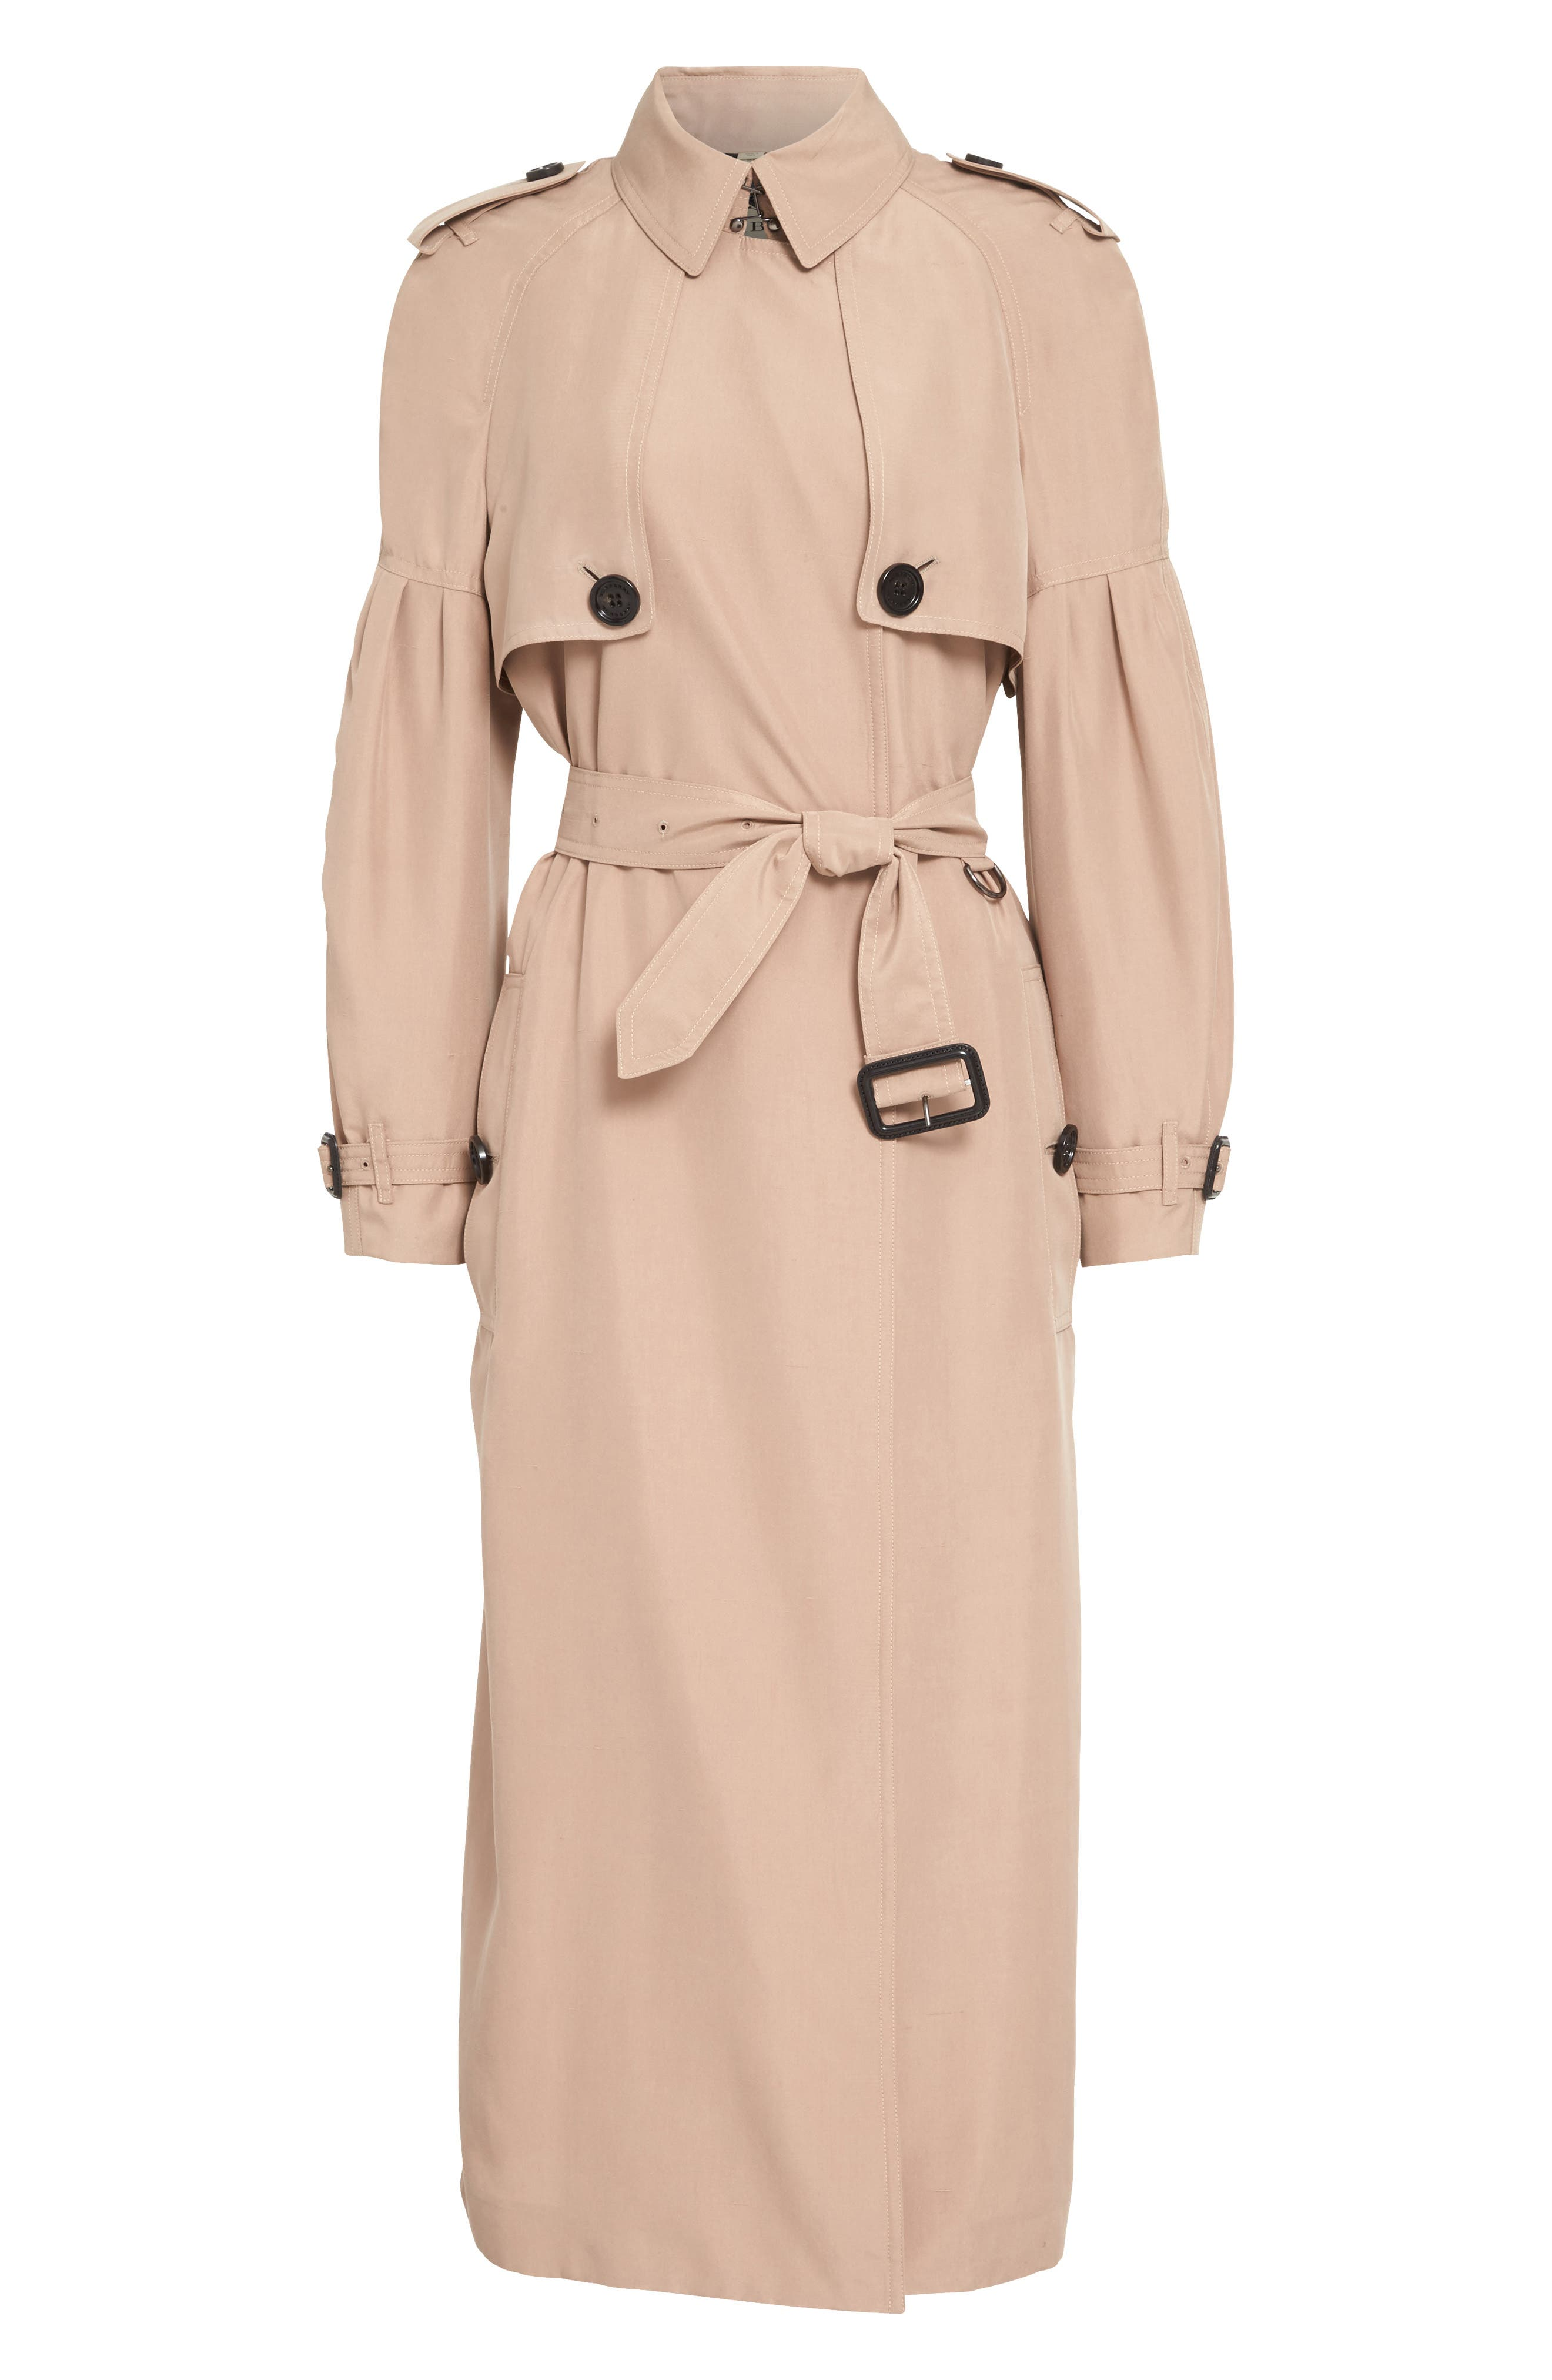 BURBERRY, Maythorne Mulberry Silk Trench, Alternate thumbnail 6, color, 250